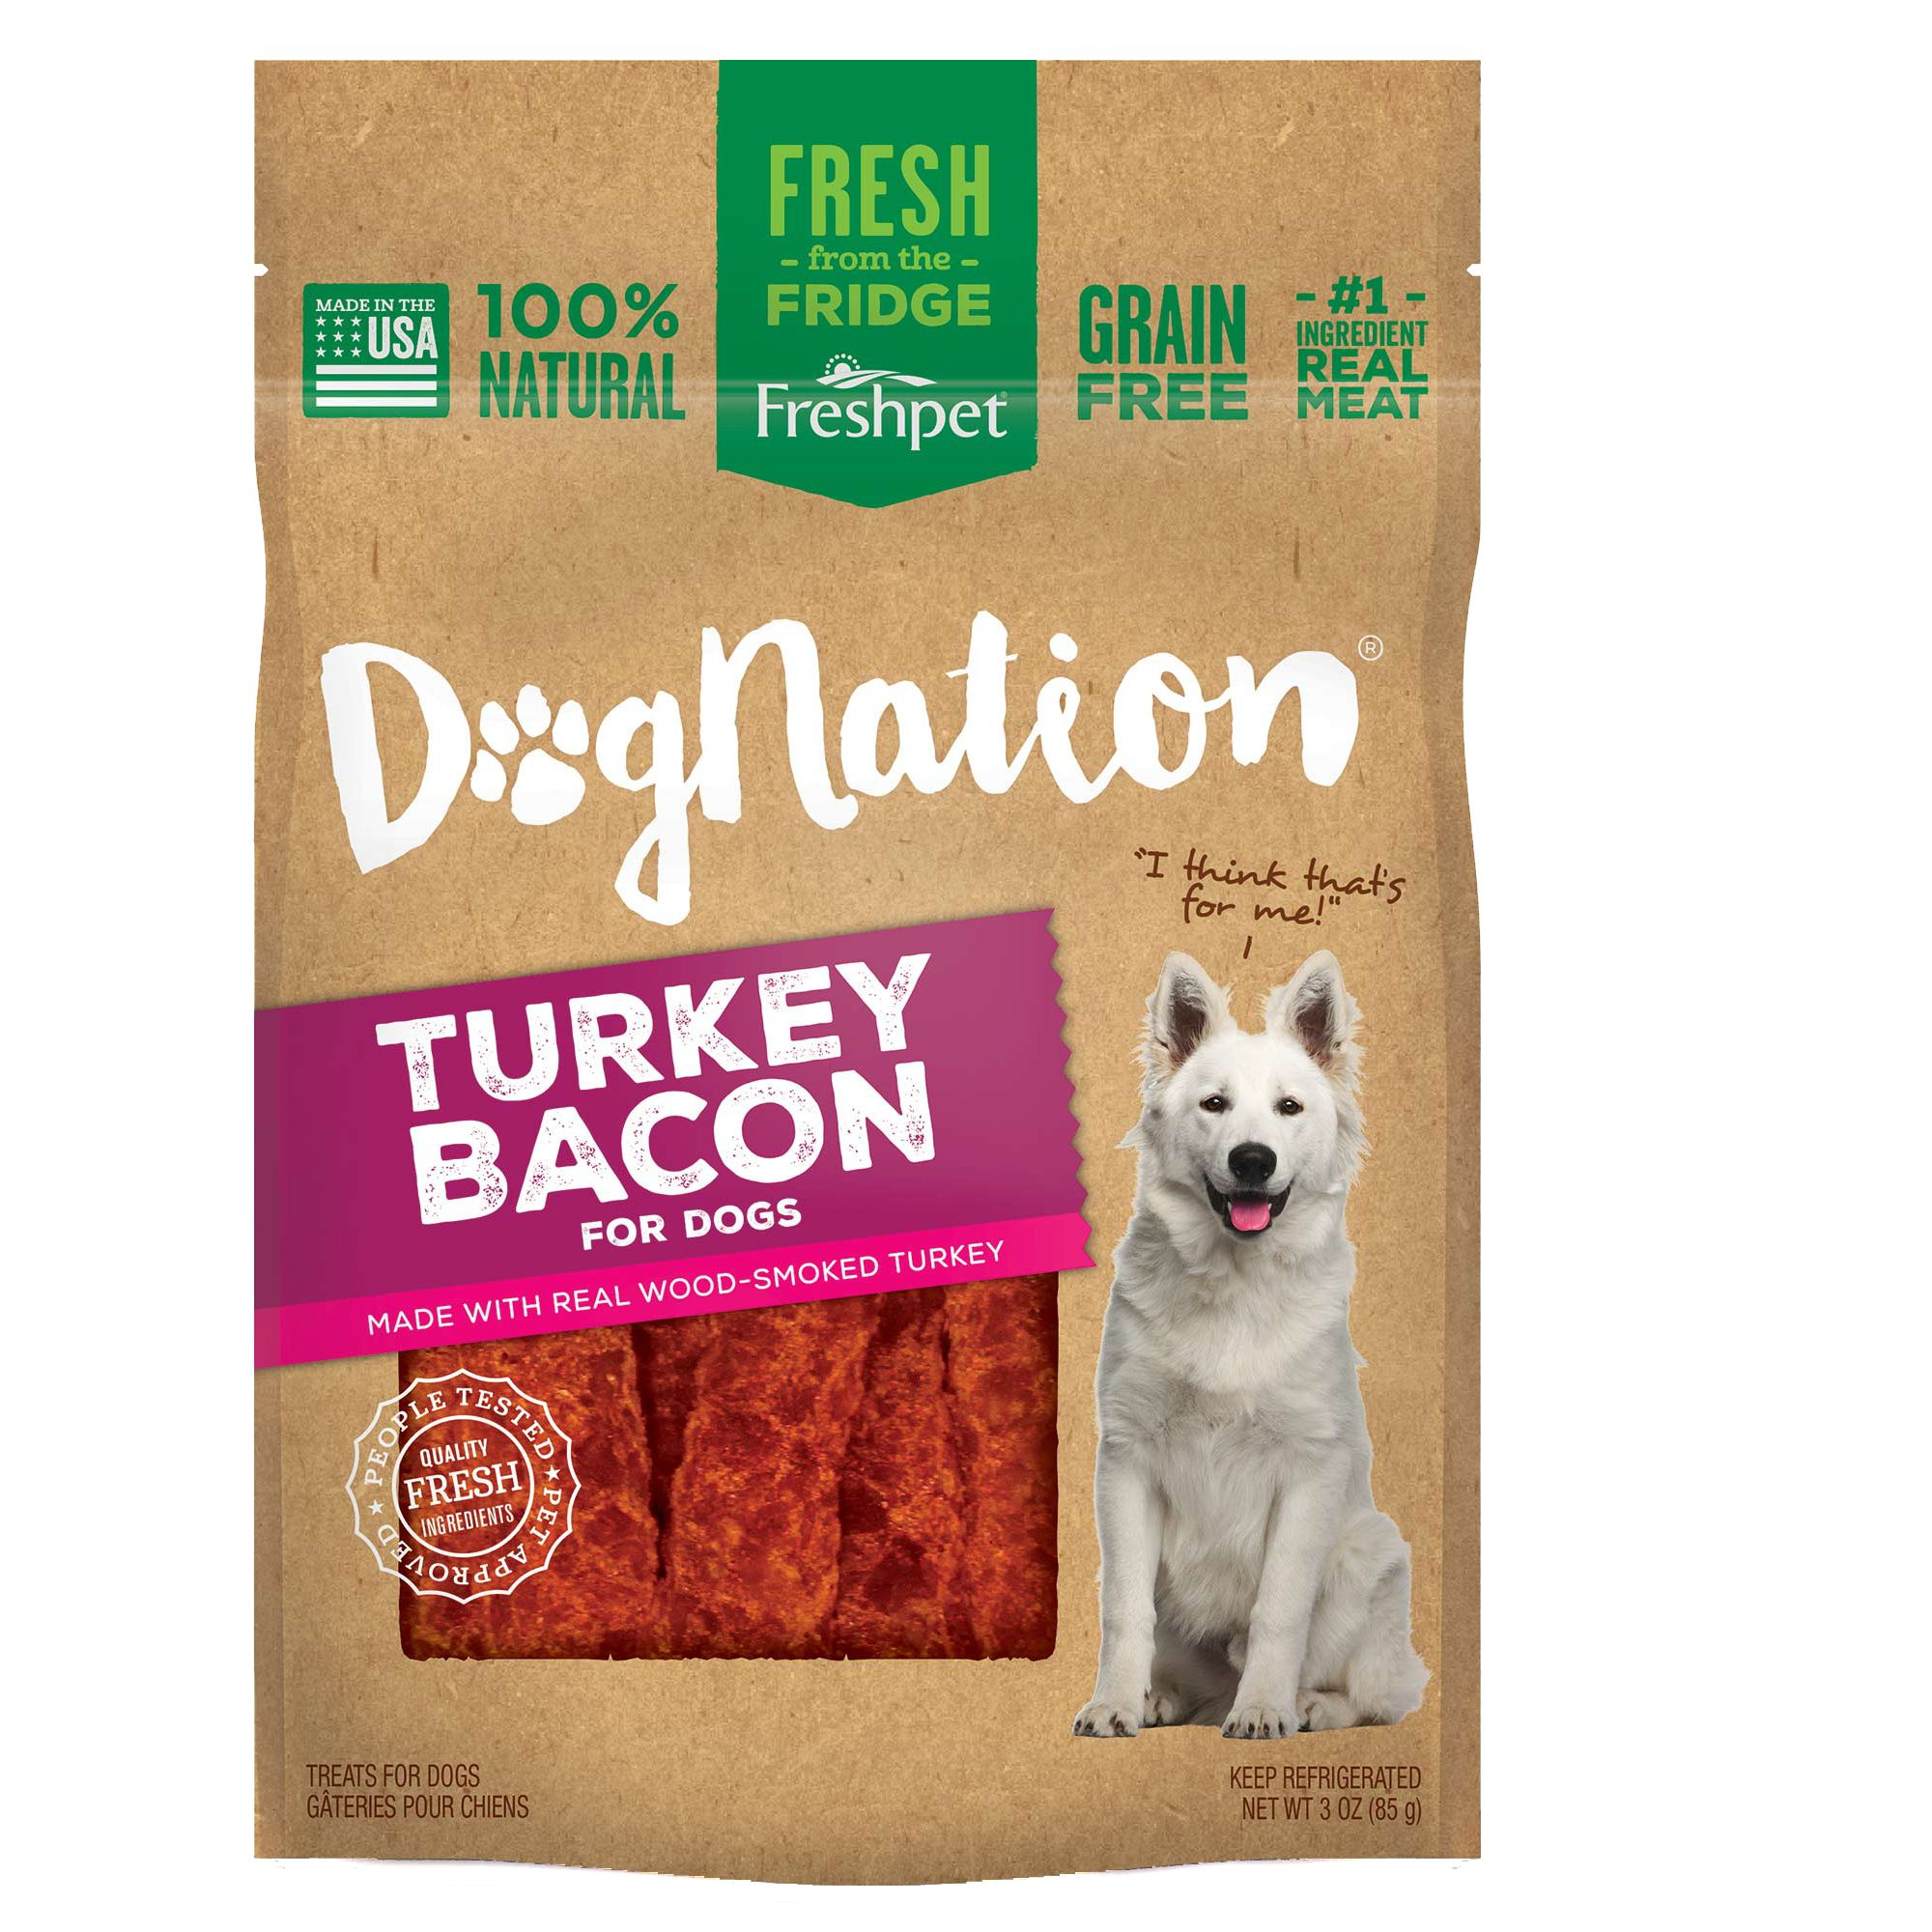 Natural, Grain Free, Turkey Bacon